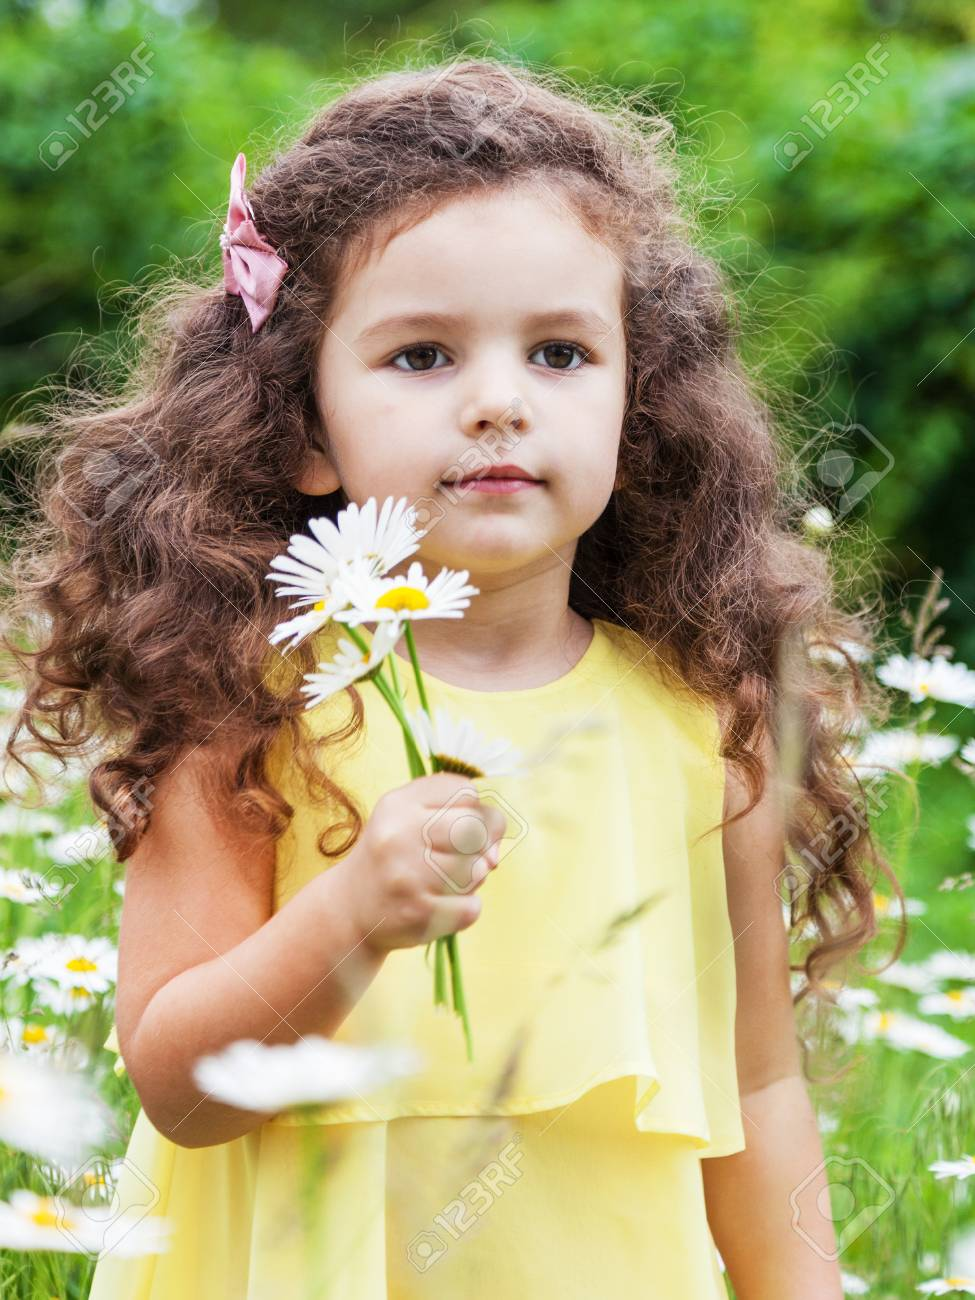 Cute baby girl with daisy flowers outdoors stock photo 99117315